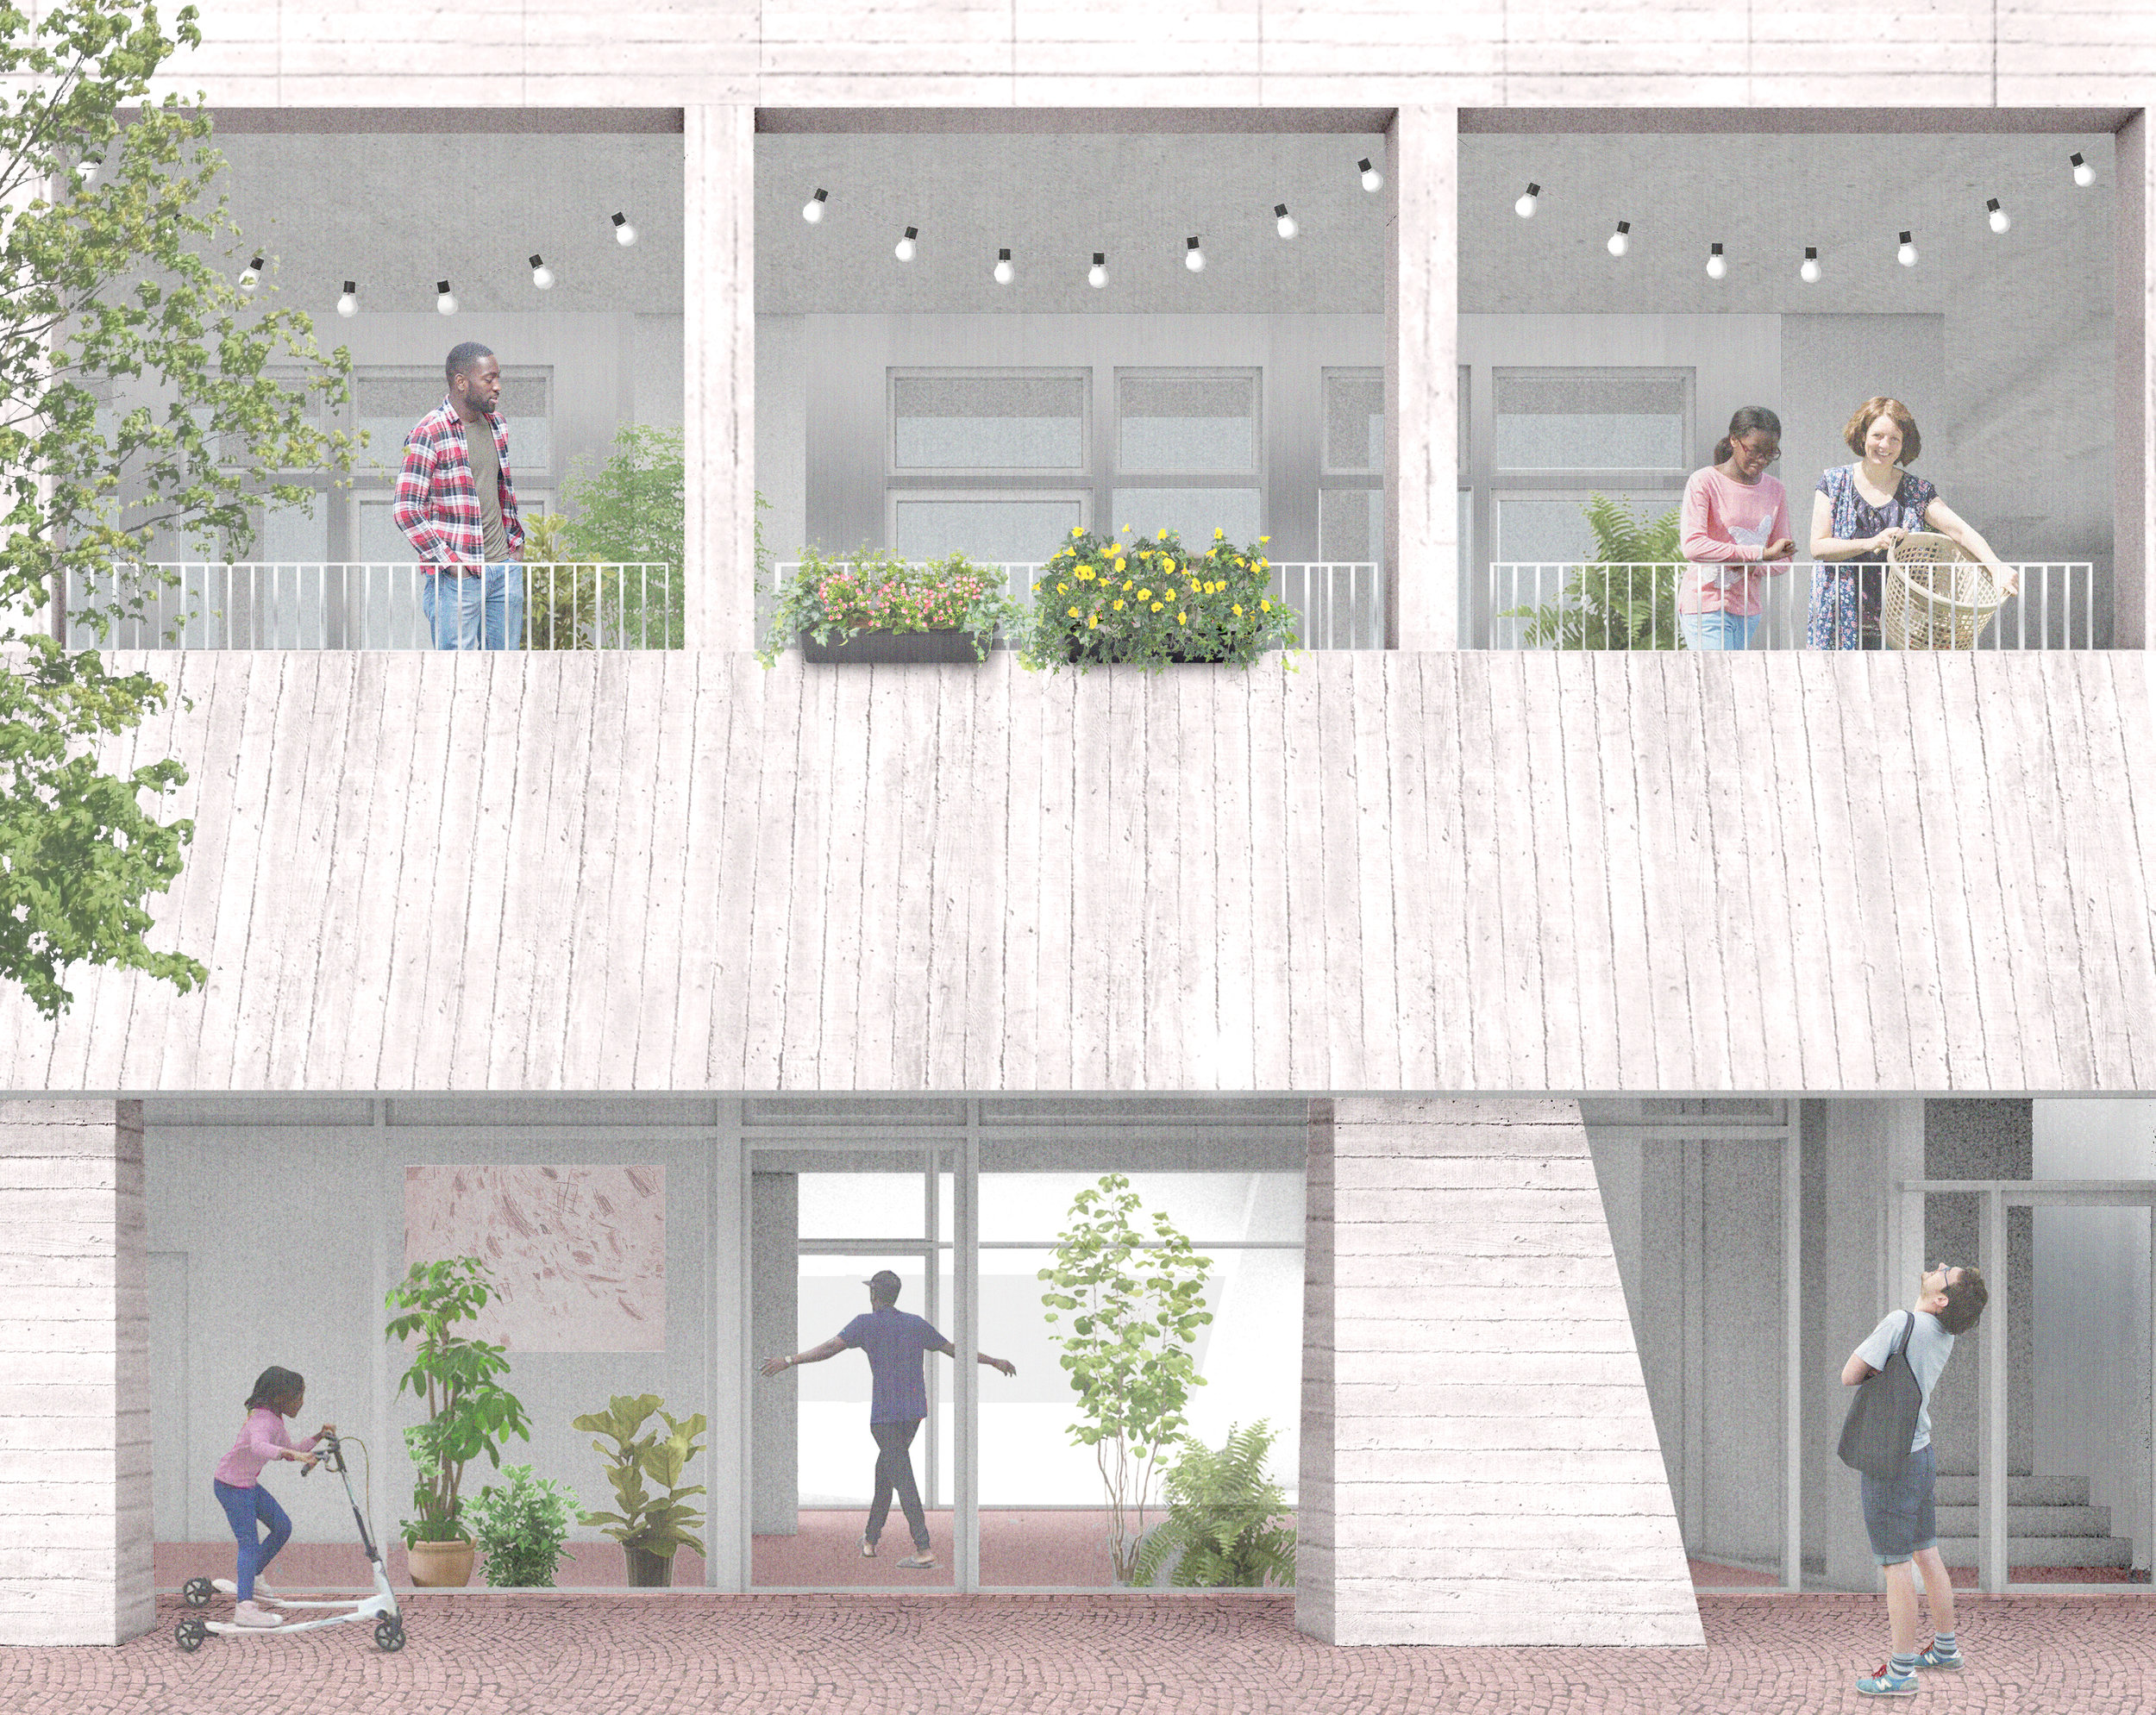 A House for Artists - A House for Artists, an ambitious new affordable housing project in Barking Town Centre. Image courtesy of Apparata.